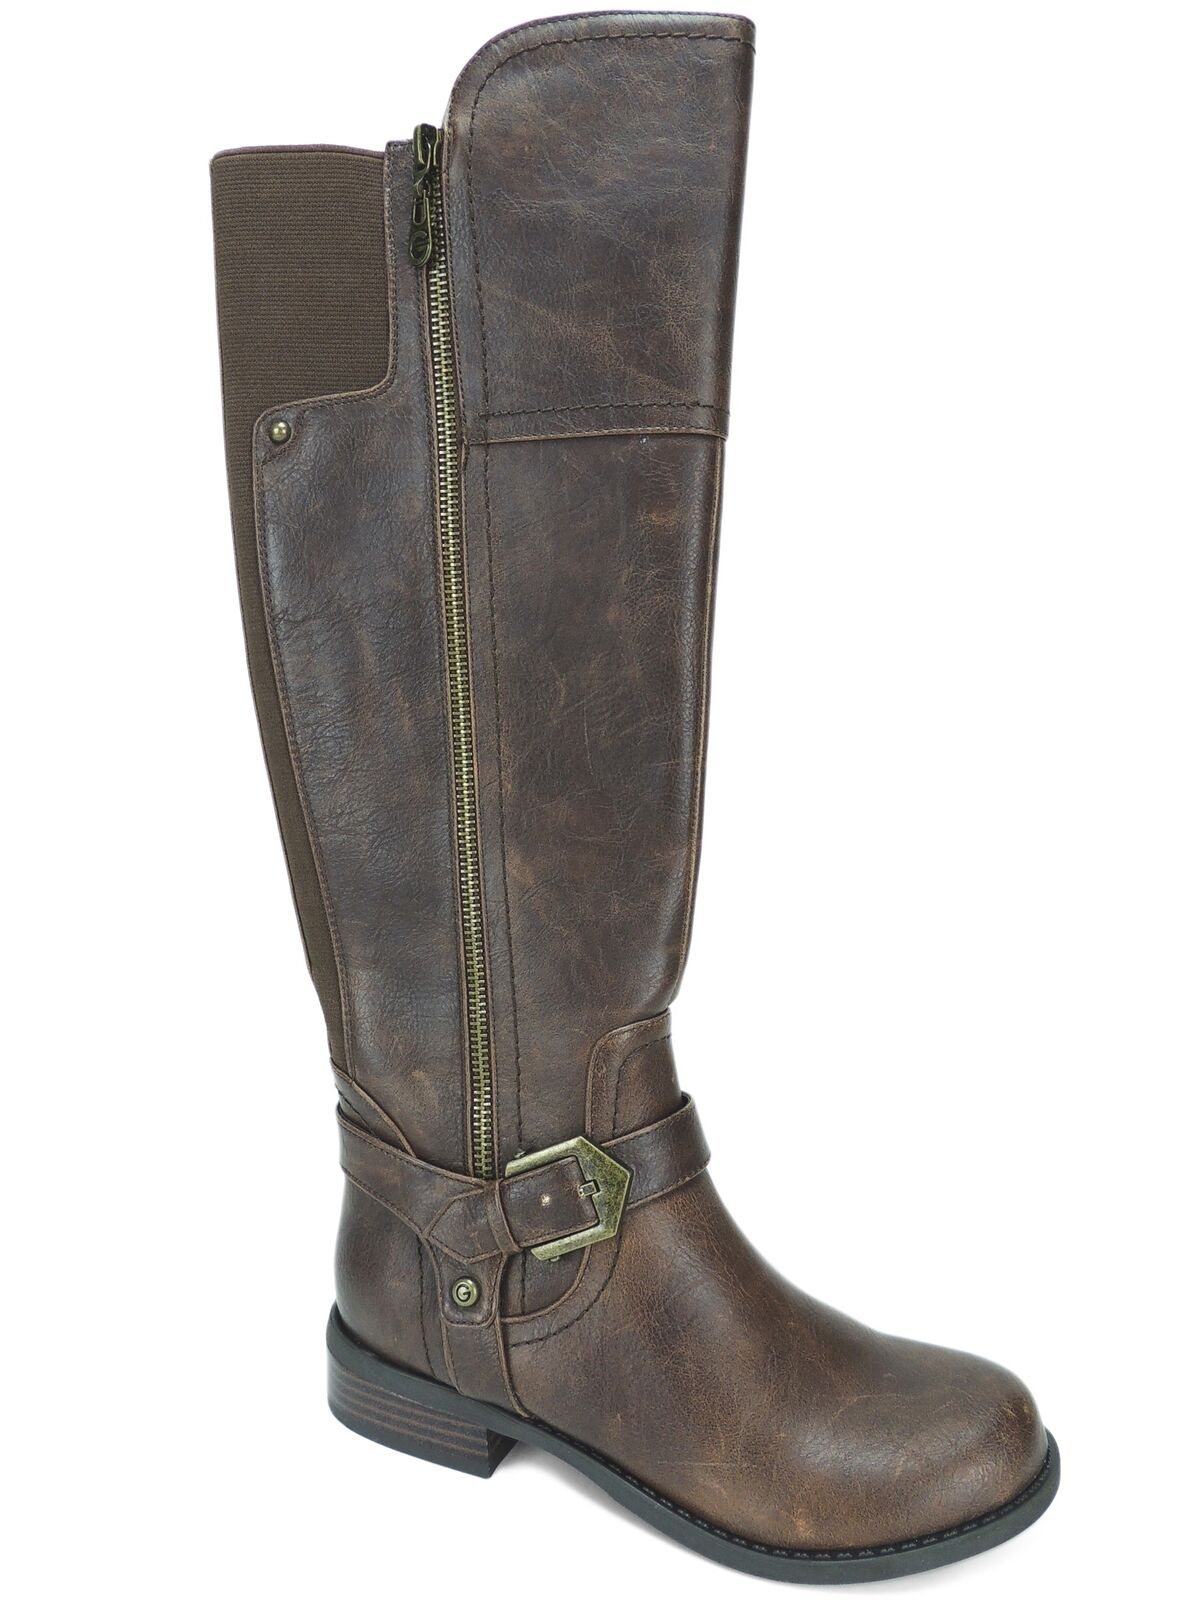 G By Guess Women's Hailee Riding Riding Riding Boots Dark Brown Size 5 M 6ff7ba